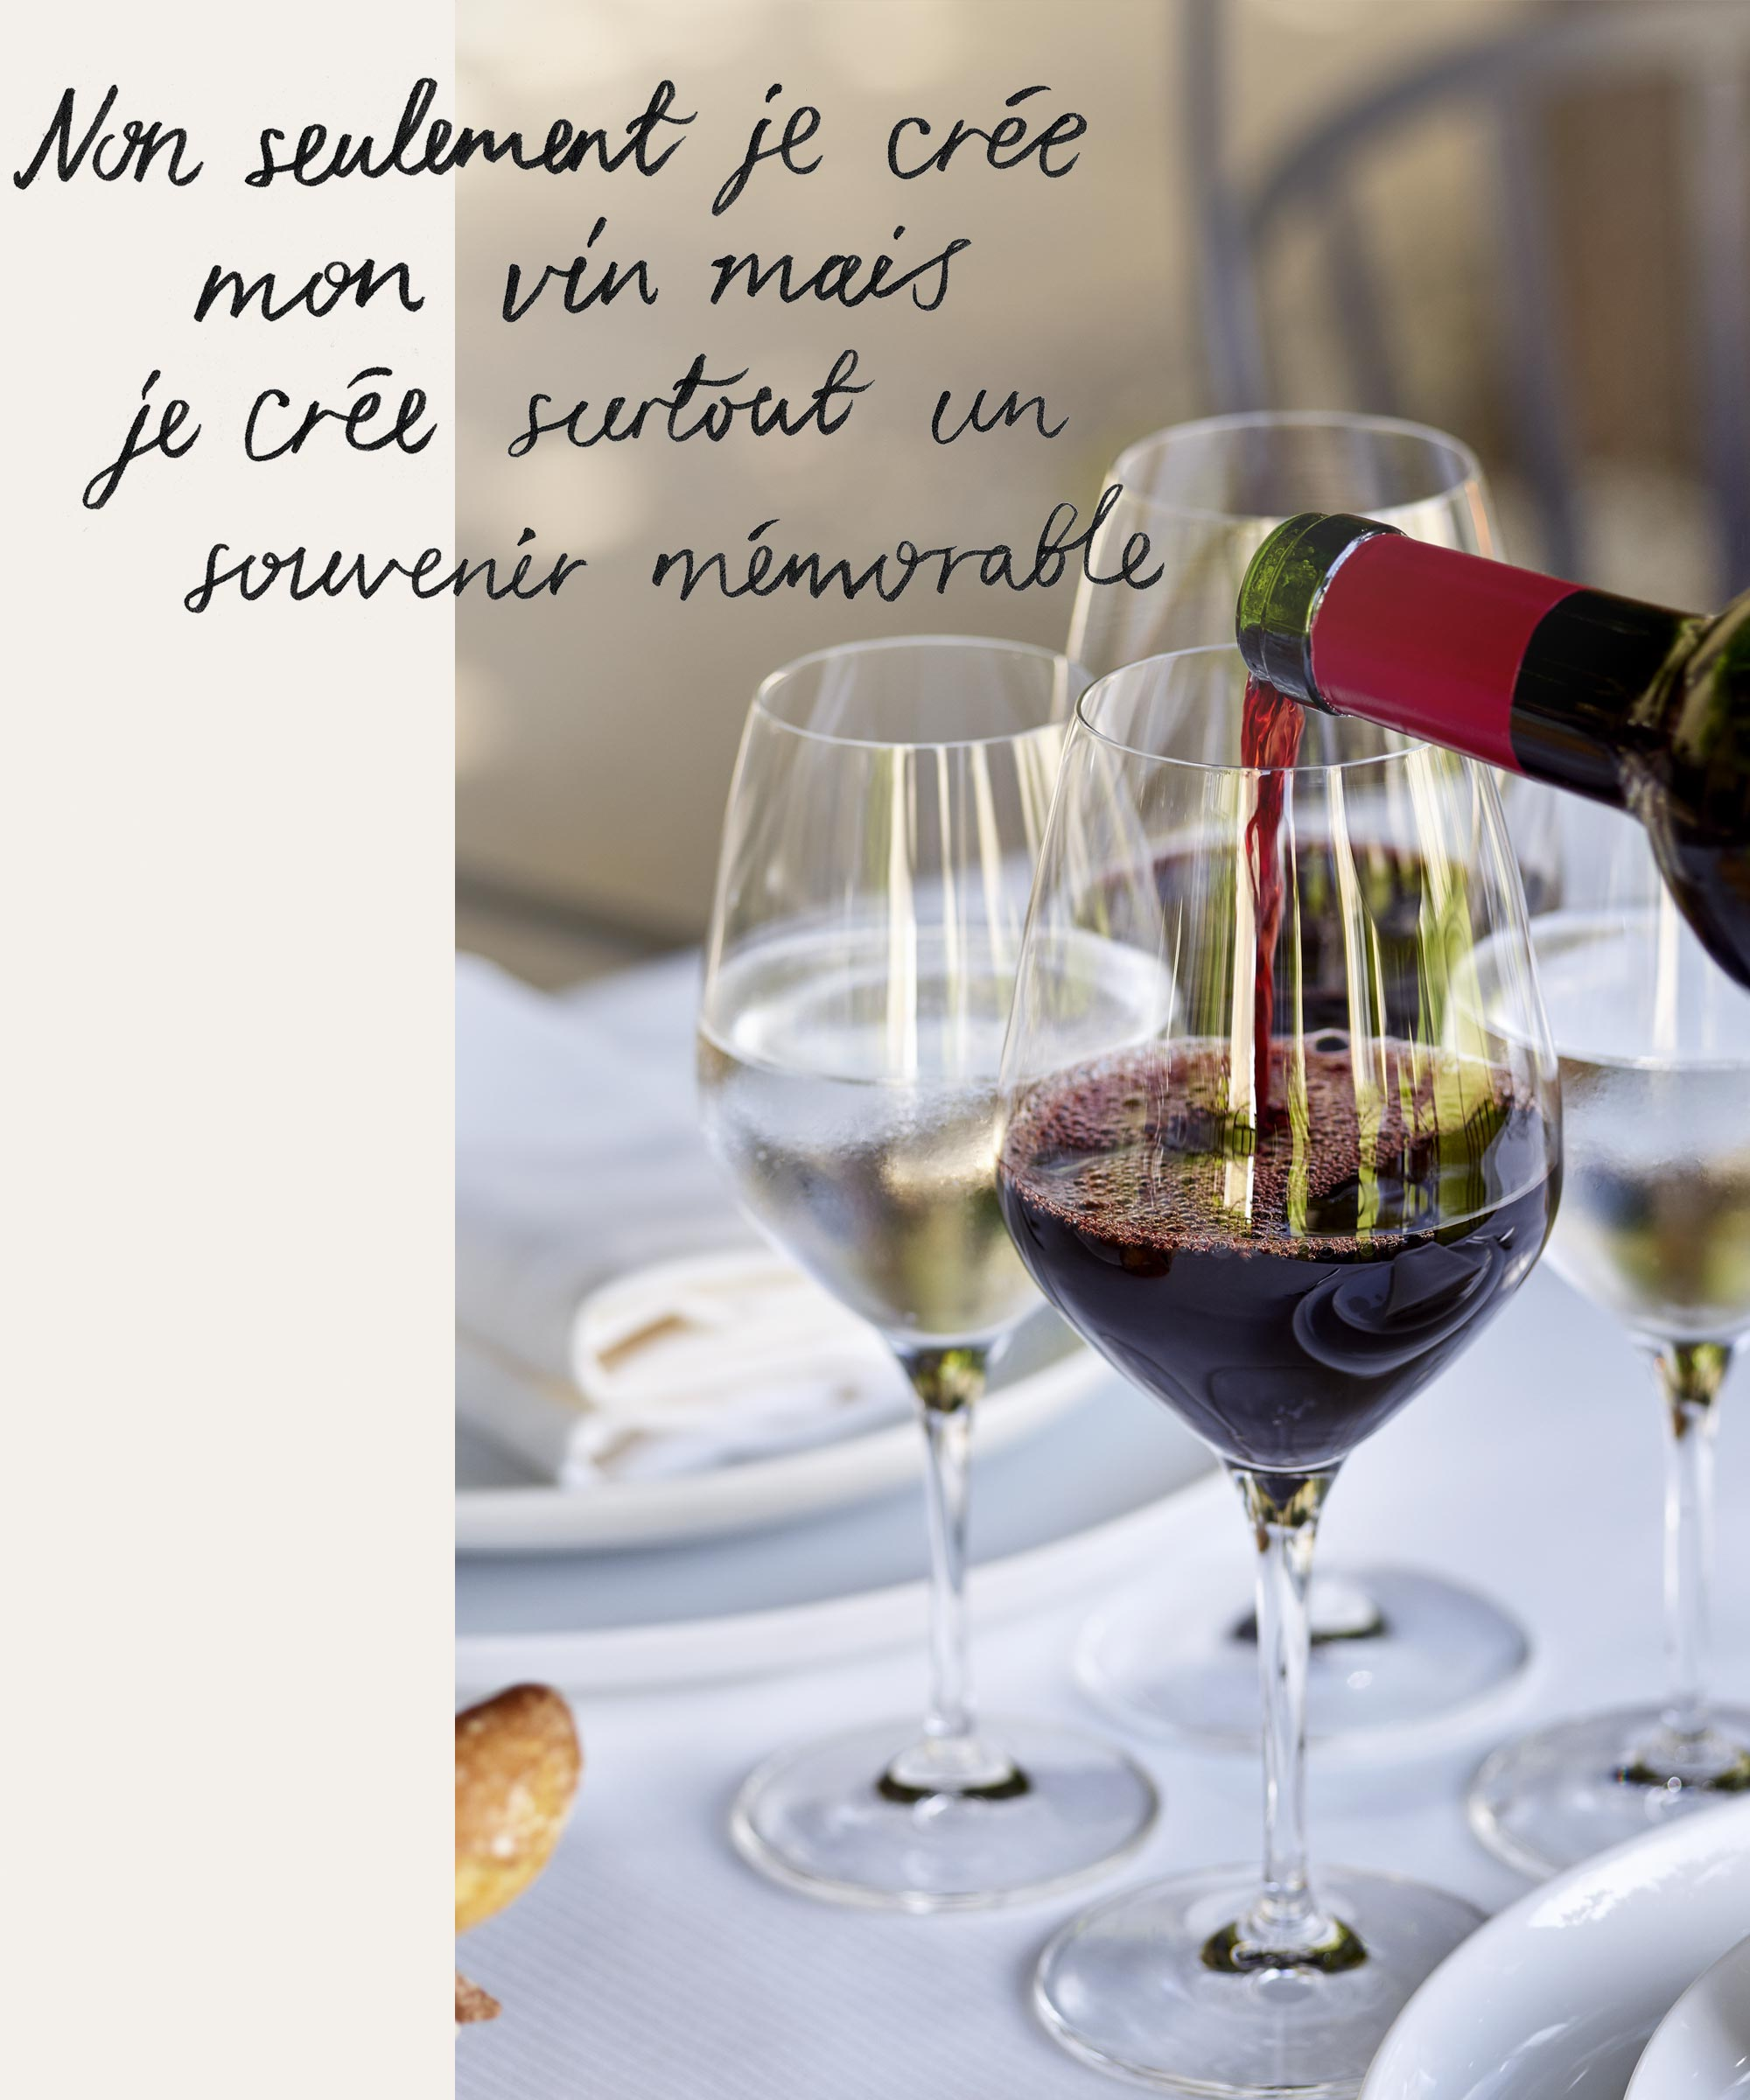 Make your own red wine with our Bordeaux experts